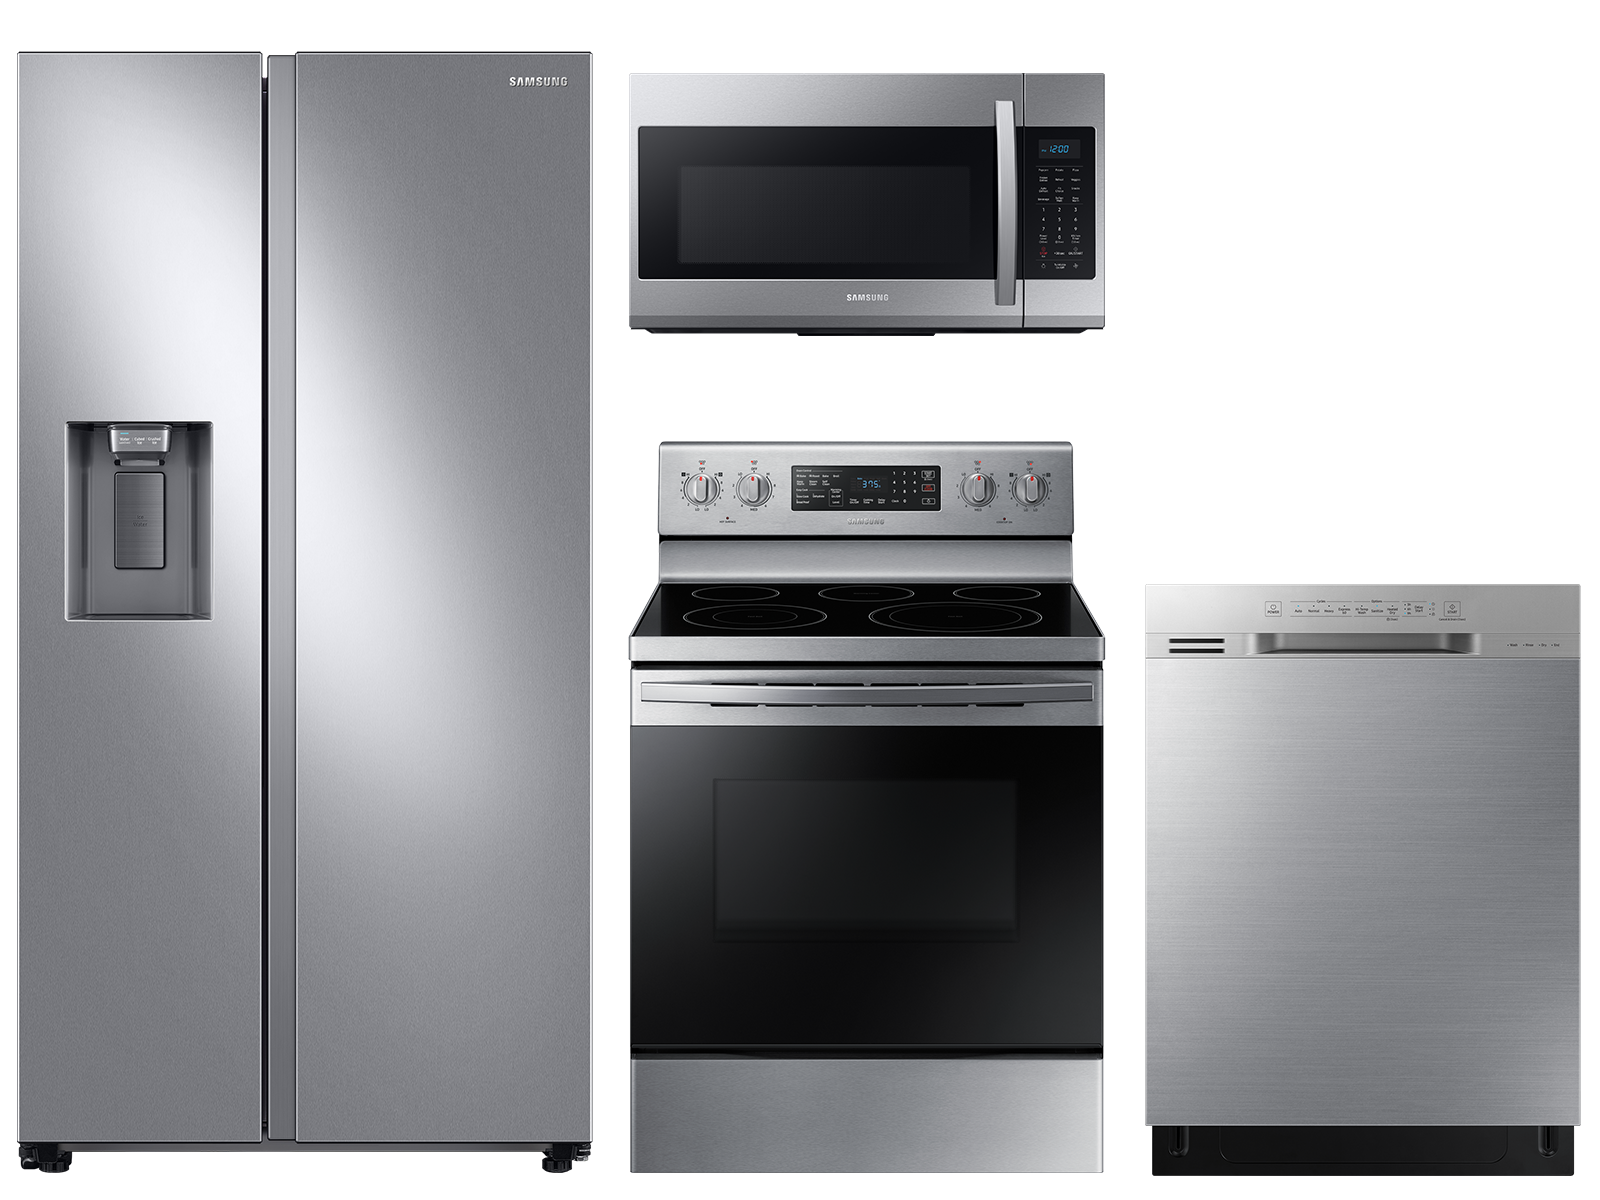 Samsung Counter depth Side-by-Side refrigerator & electric range package in stainless steel